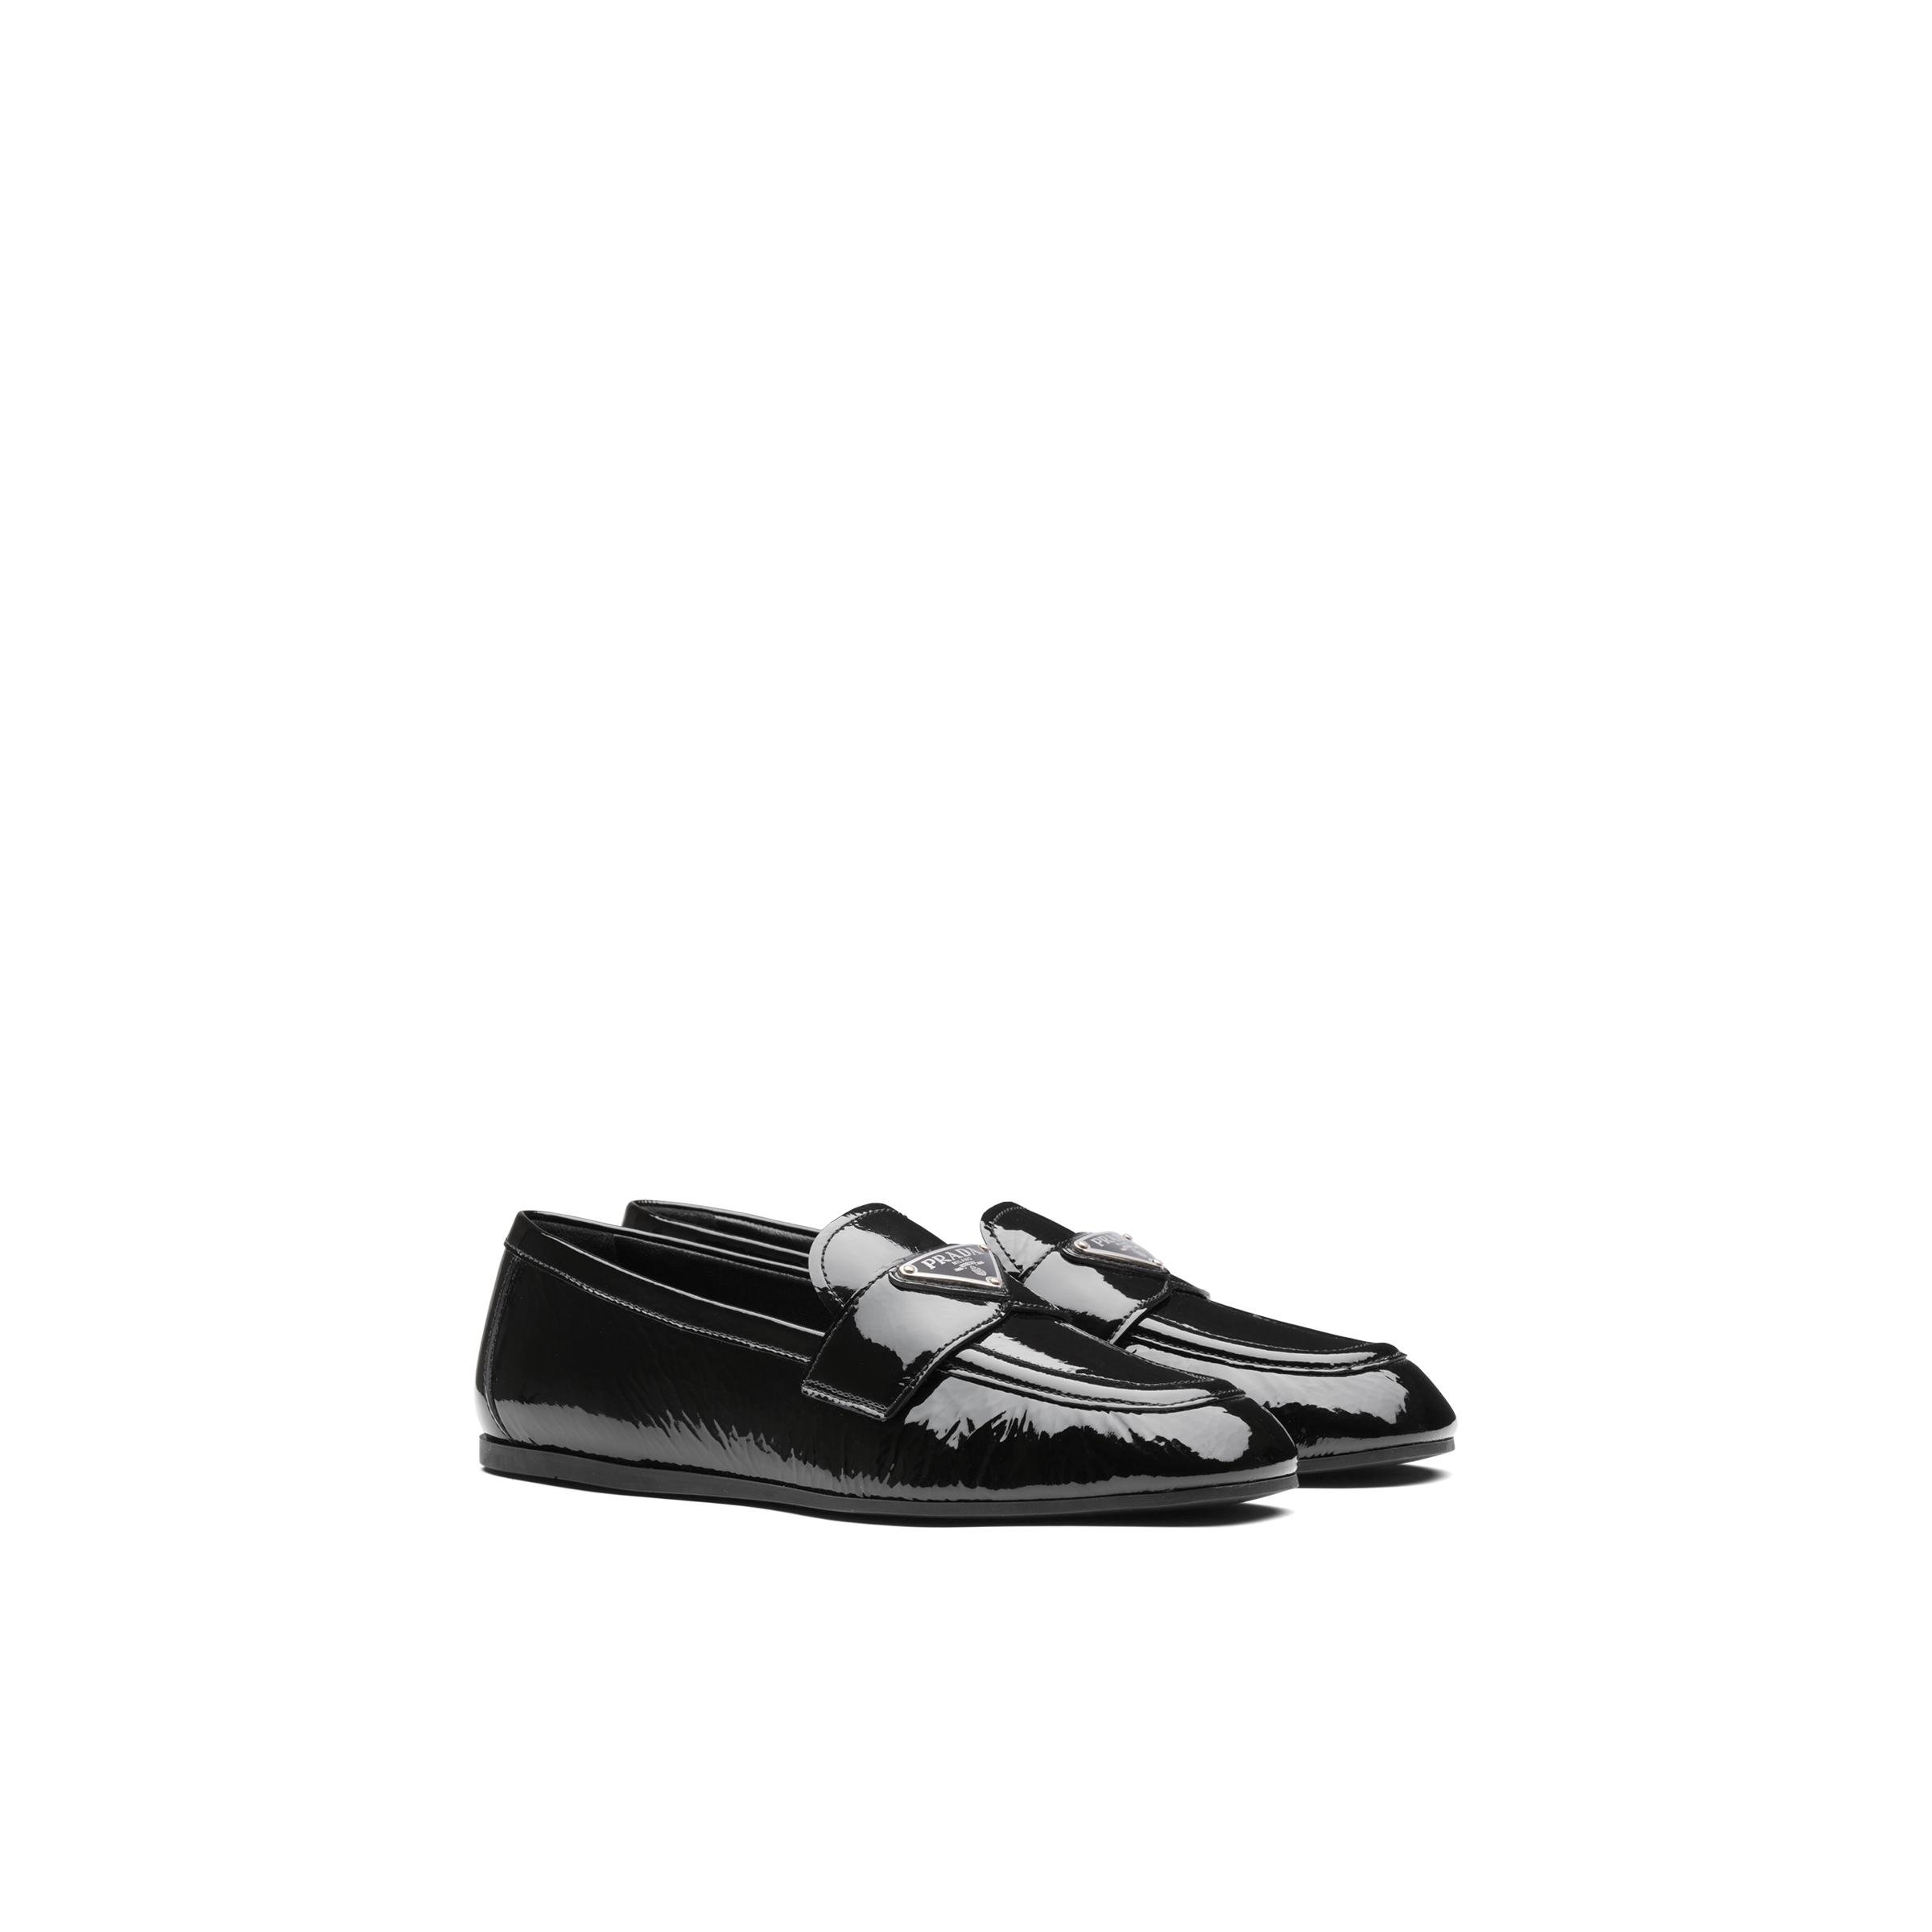 Patent Leather Loafers Women Black Size 36 0